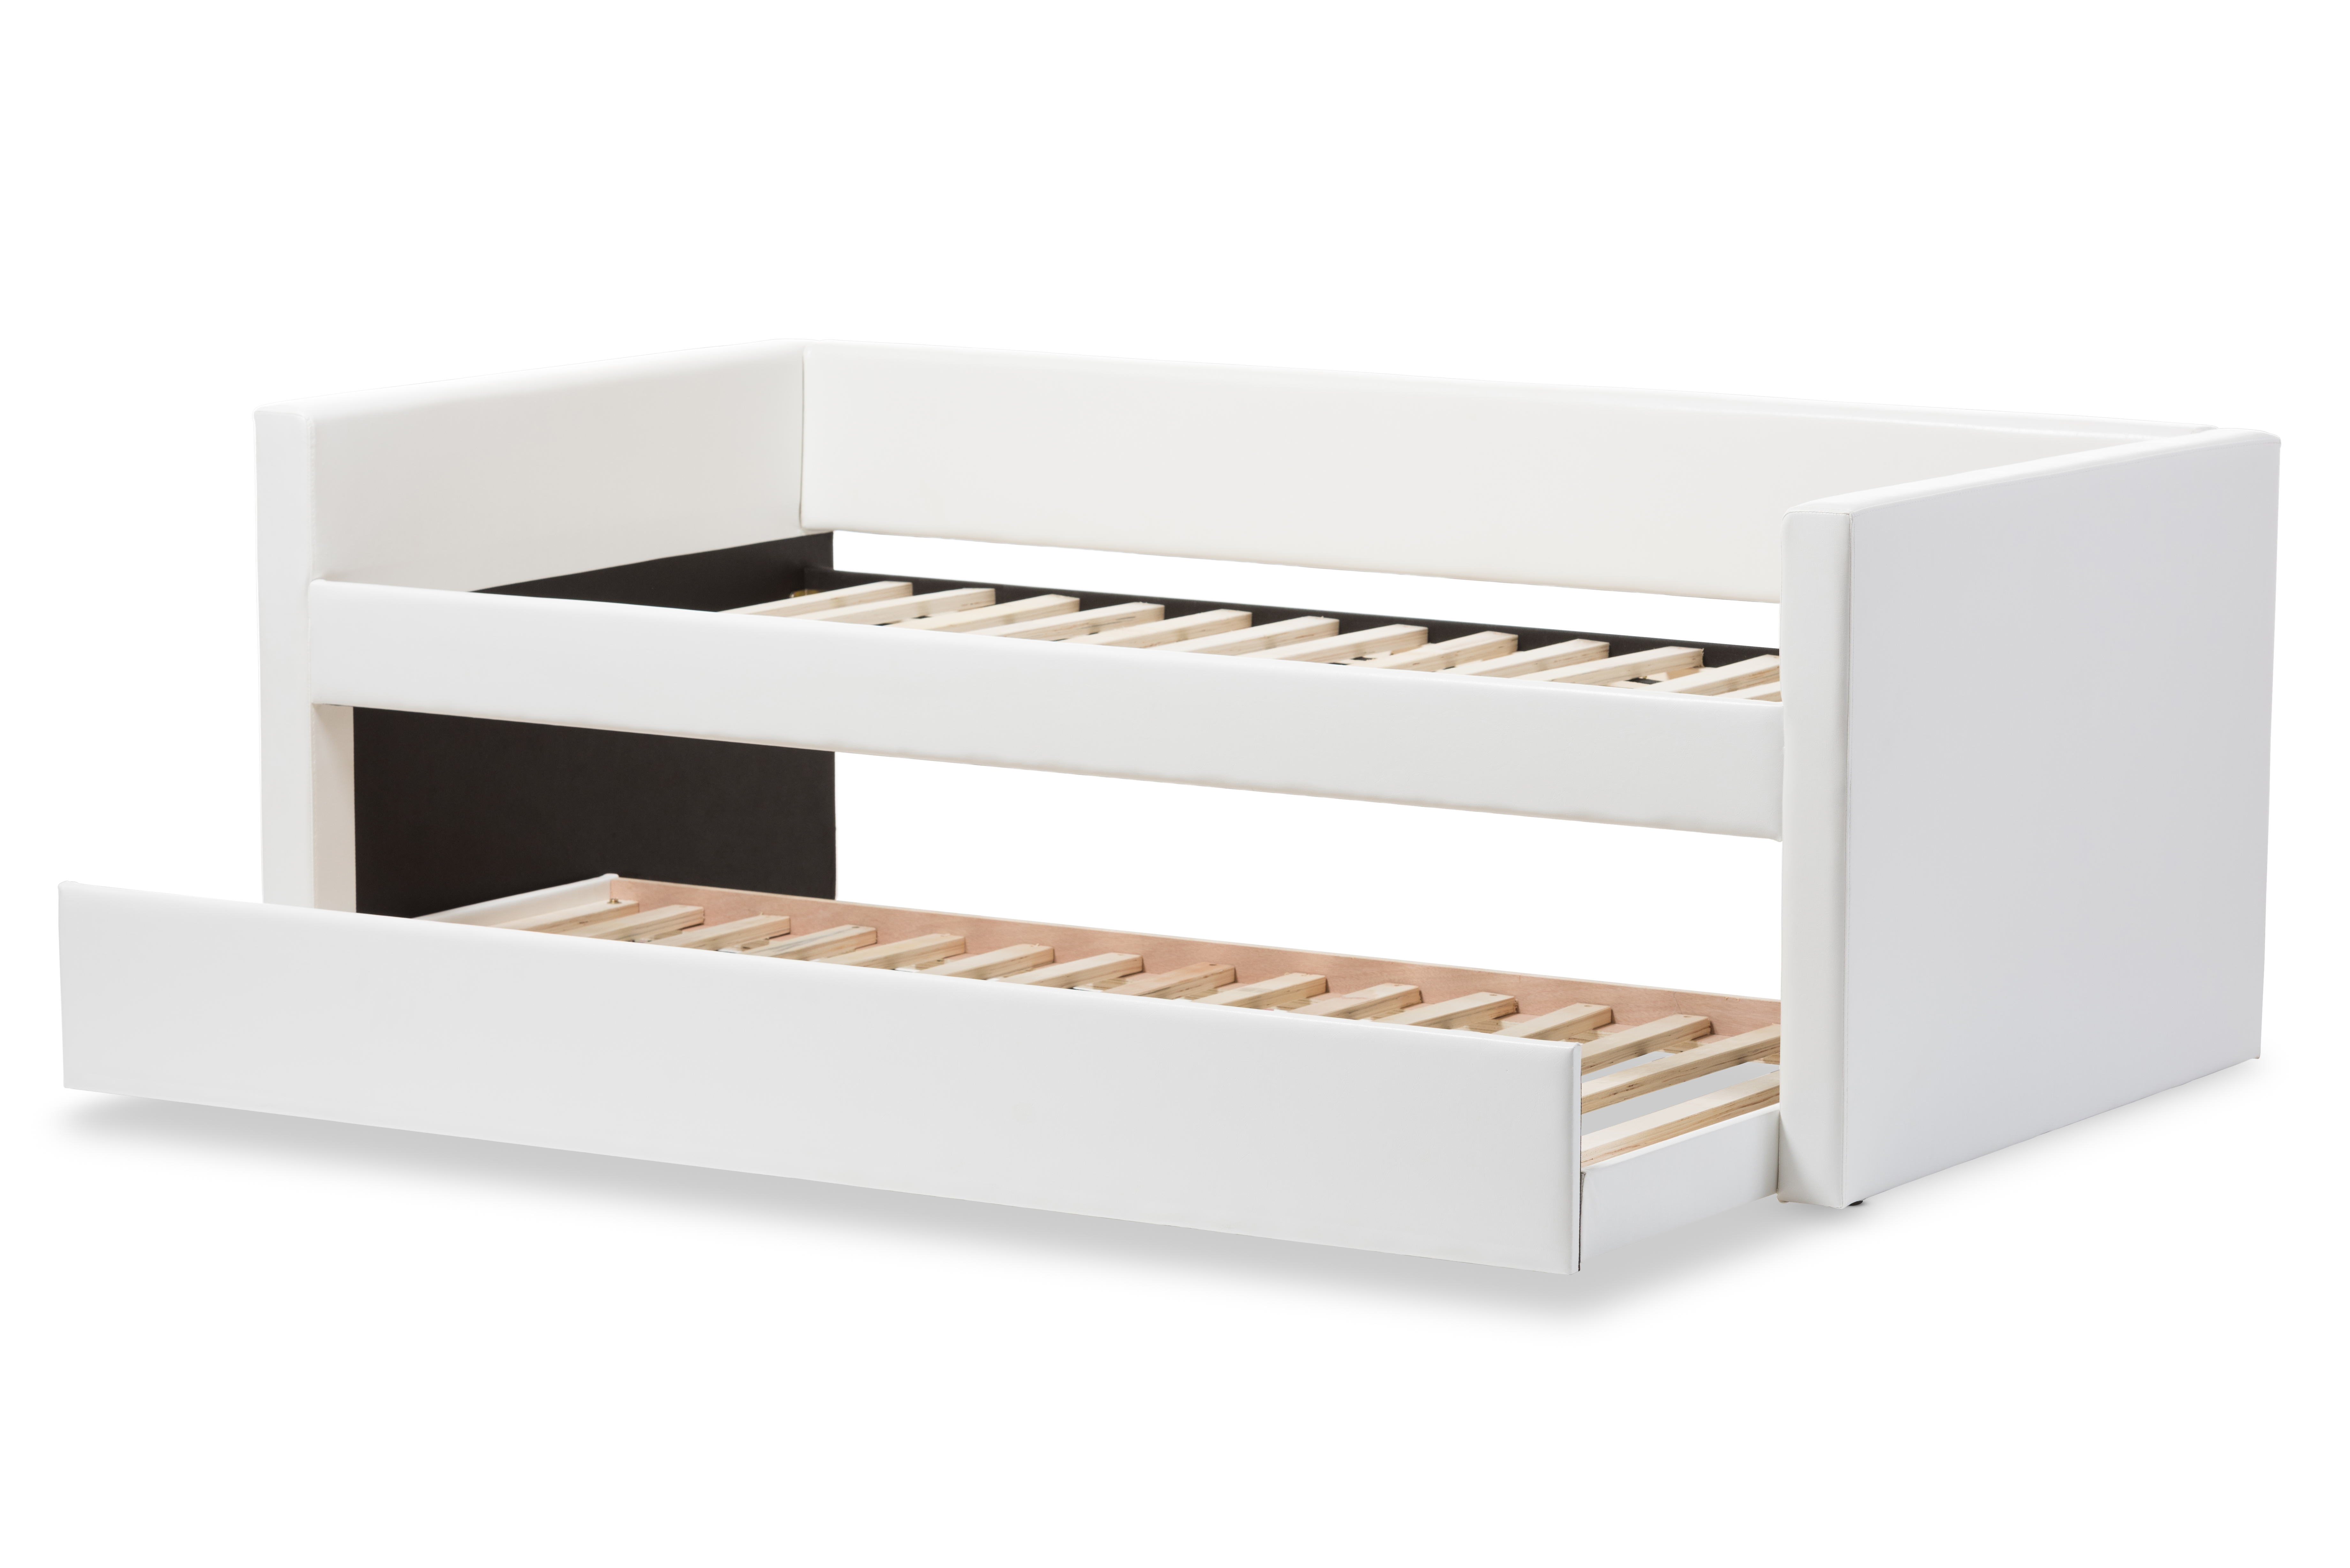 baxton studio risom modern and white faux leather upholstered twin size daybed bed frame with